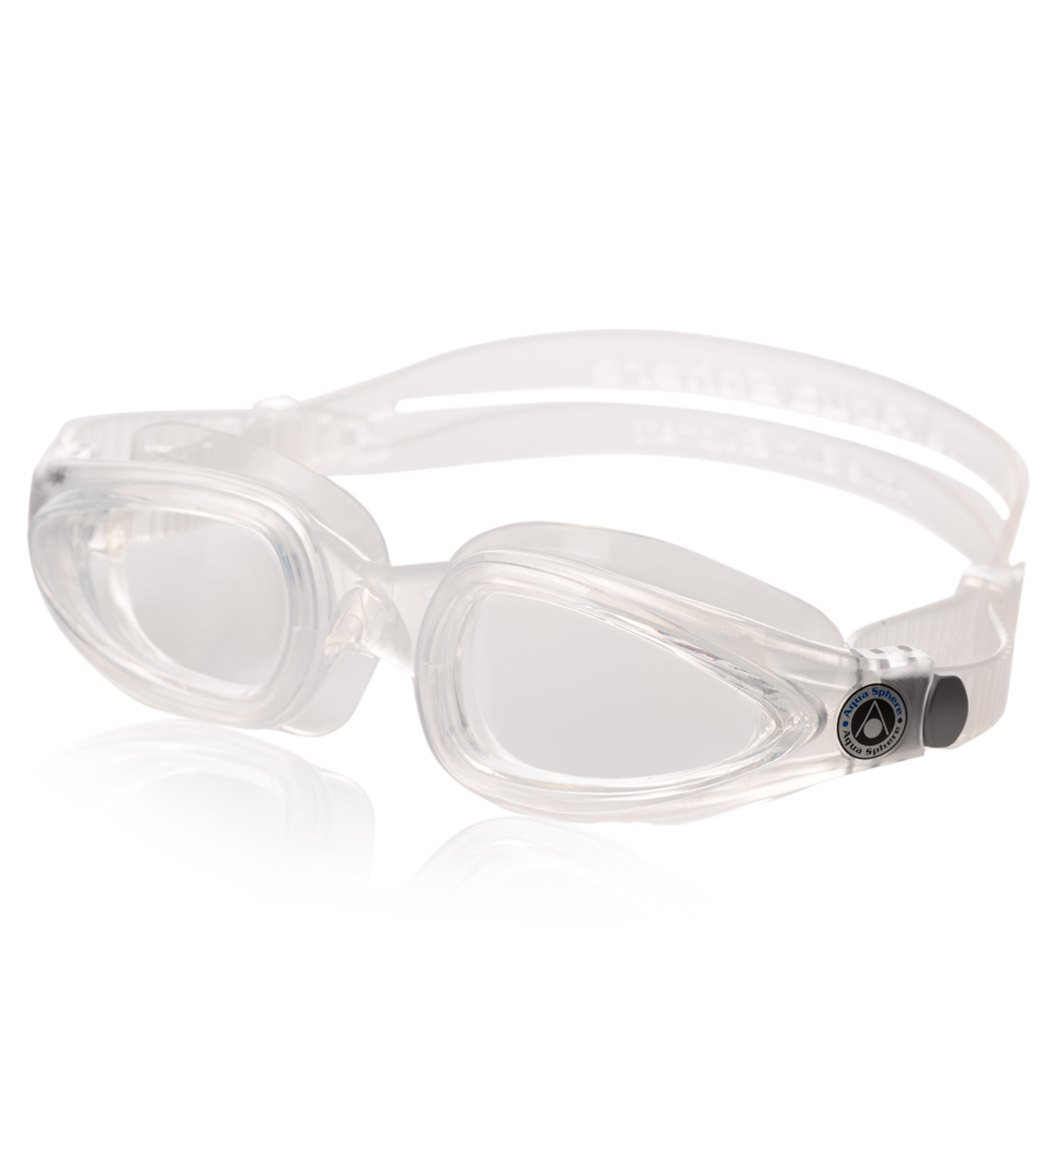 830642a81a Aqua Sphere Eagle Goggle at SwimOutlet.com